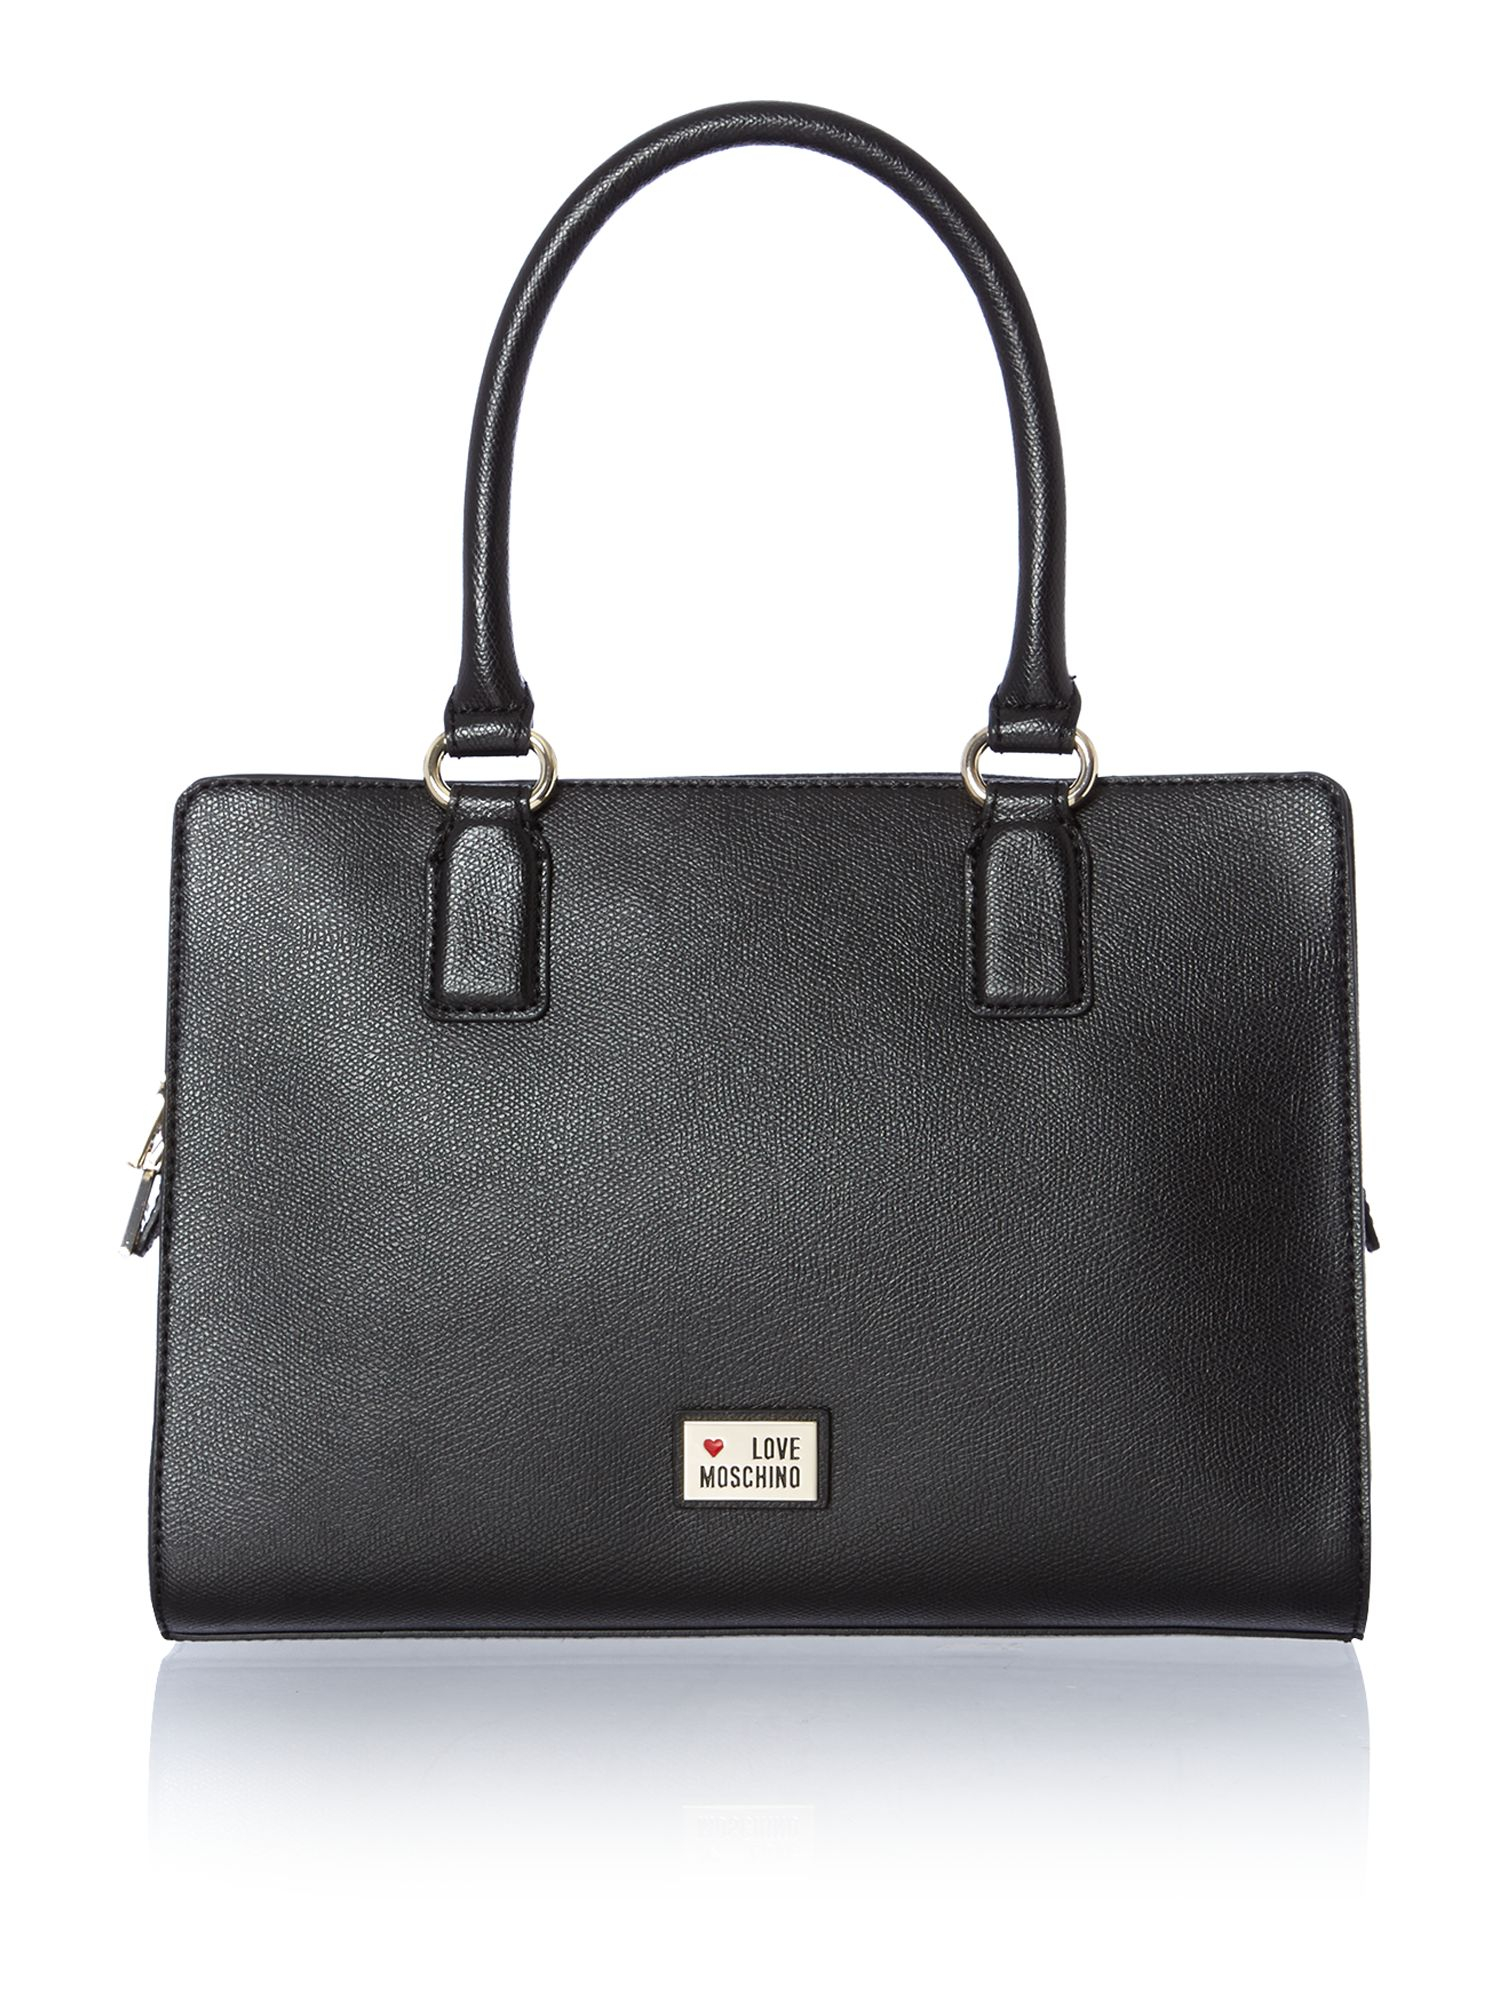 Love Moschino Black Small Saffiano Tote Bag